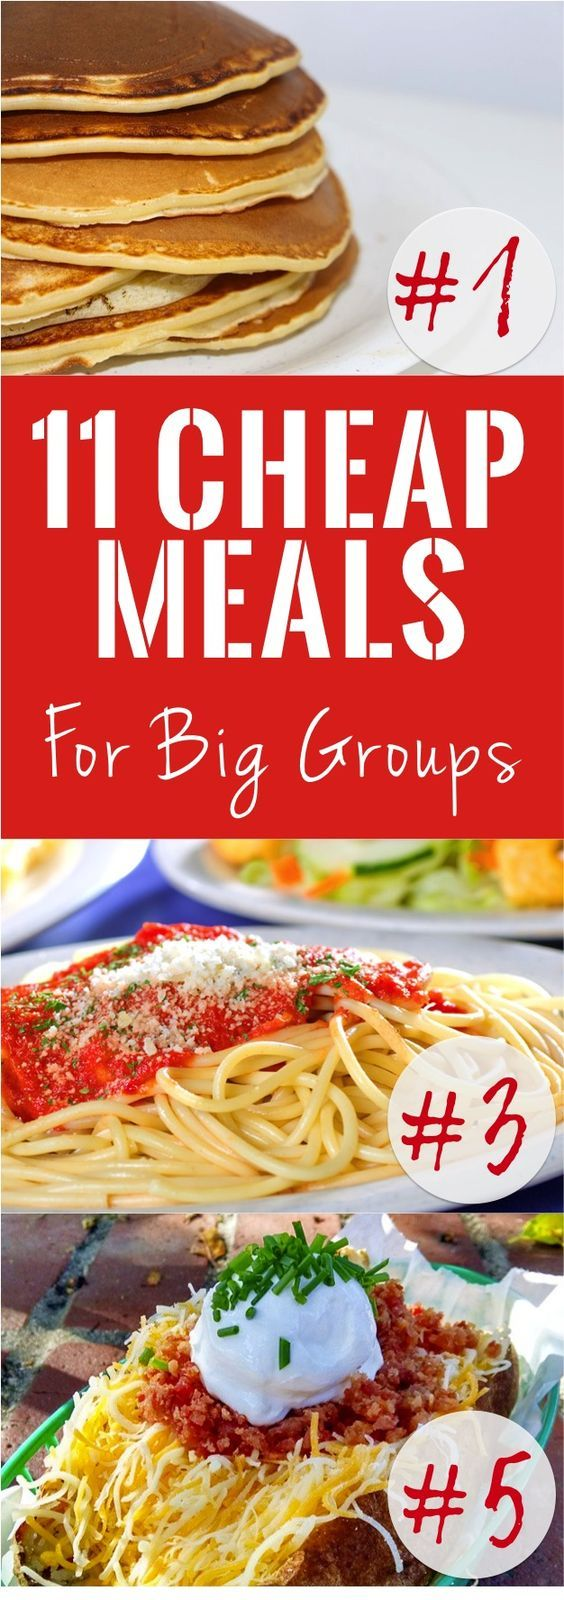 11 Cheap Meals for Big Groups   We all know that a big part of feeding a large group on a budget is serving budget-friendly food; so, below are 11 ideas for cheap meals to feed a large group. If you have a menu to plan for a lot of people, definitely also check out our post How to Feed a Large Group on a Budget. That post will give you tips on ways to cut costs when feeding the masses.   Cheap dinner, lunch, breakfast ideas   Food for a lot of people